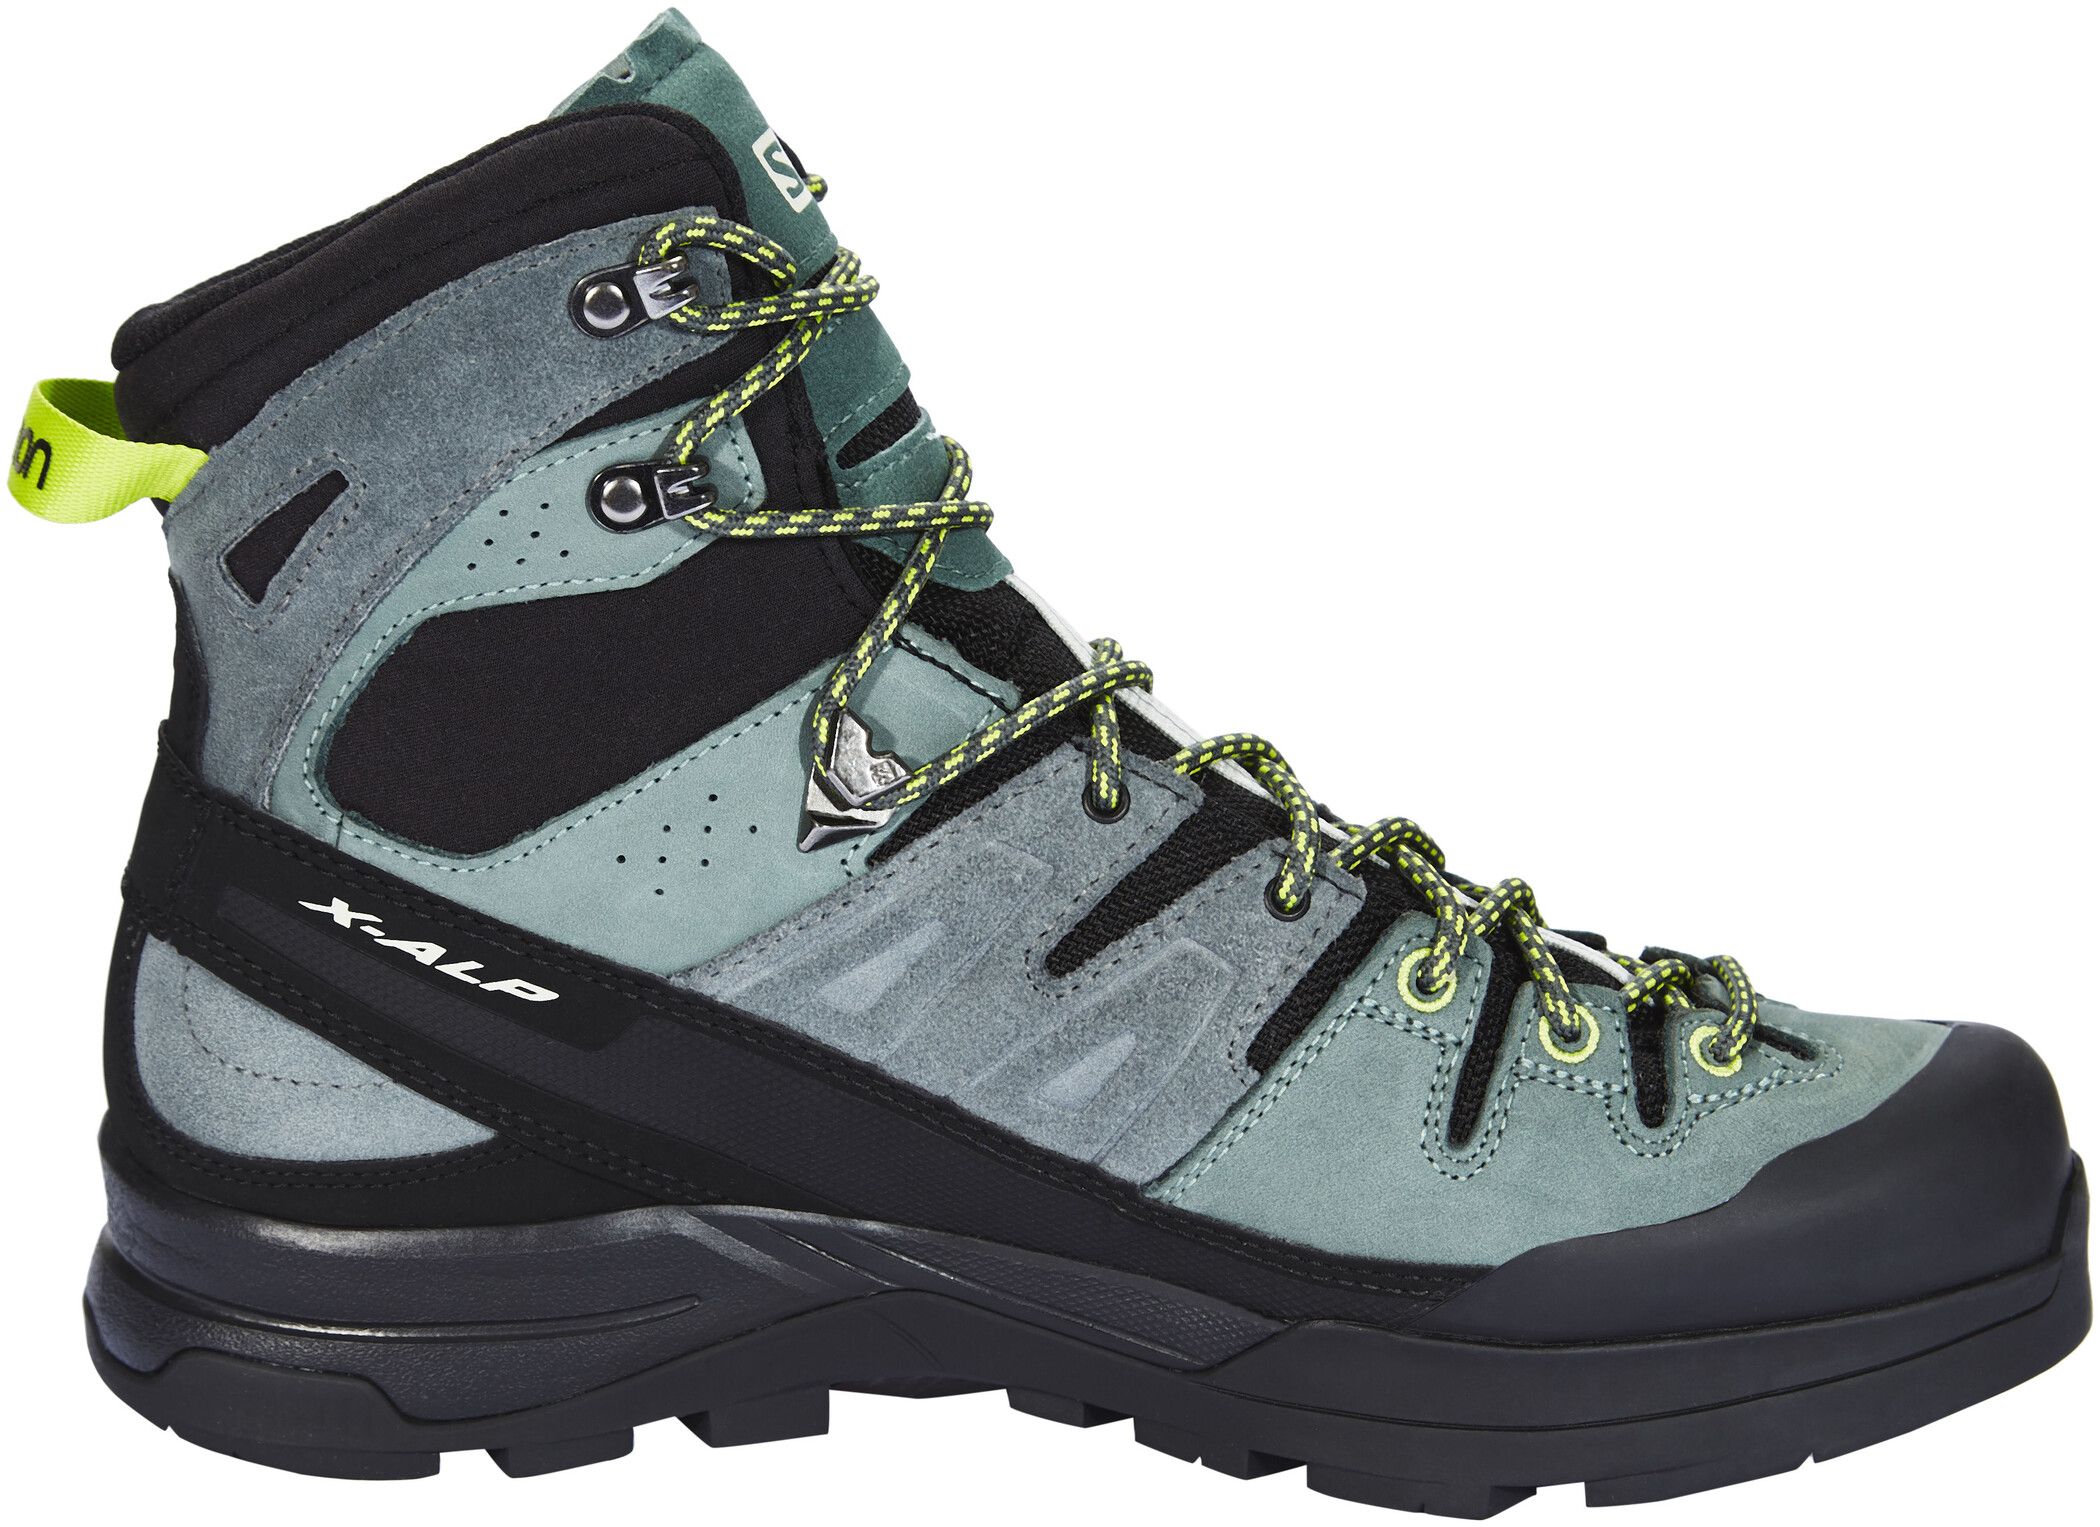 Salomon X Alp High LTR GTX Shoes Herr urban chicbalsam greenlime green